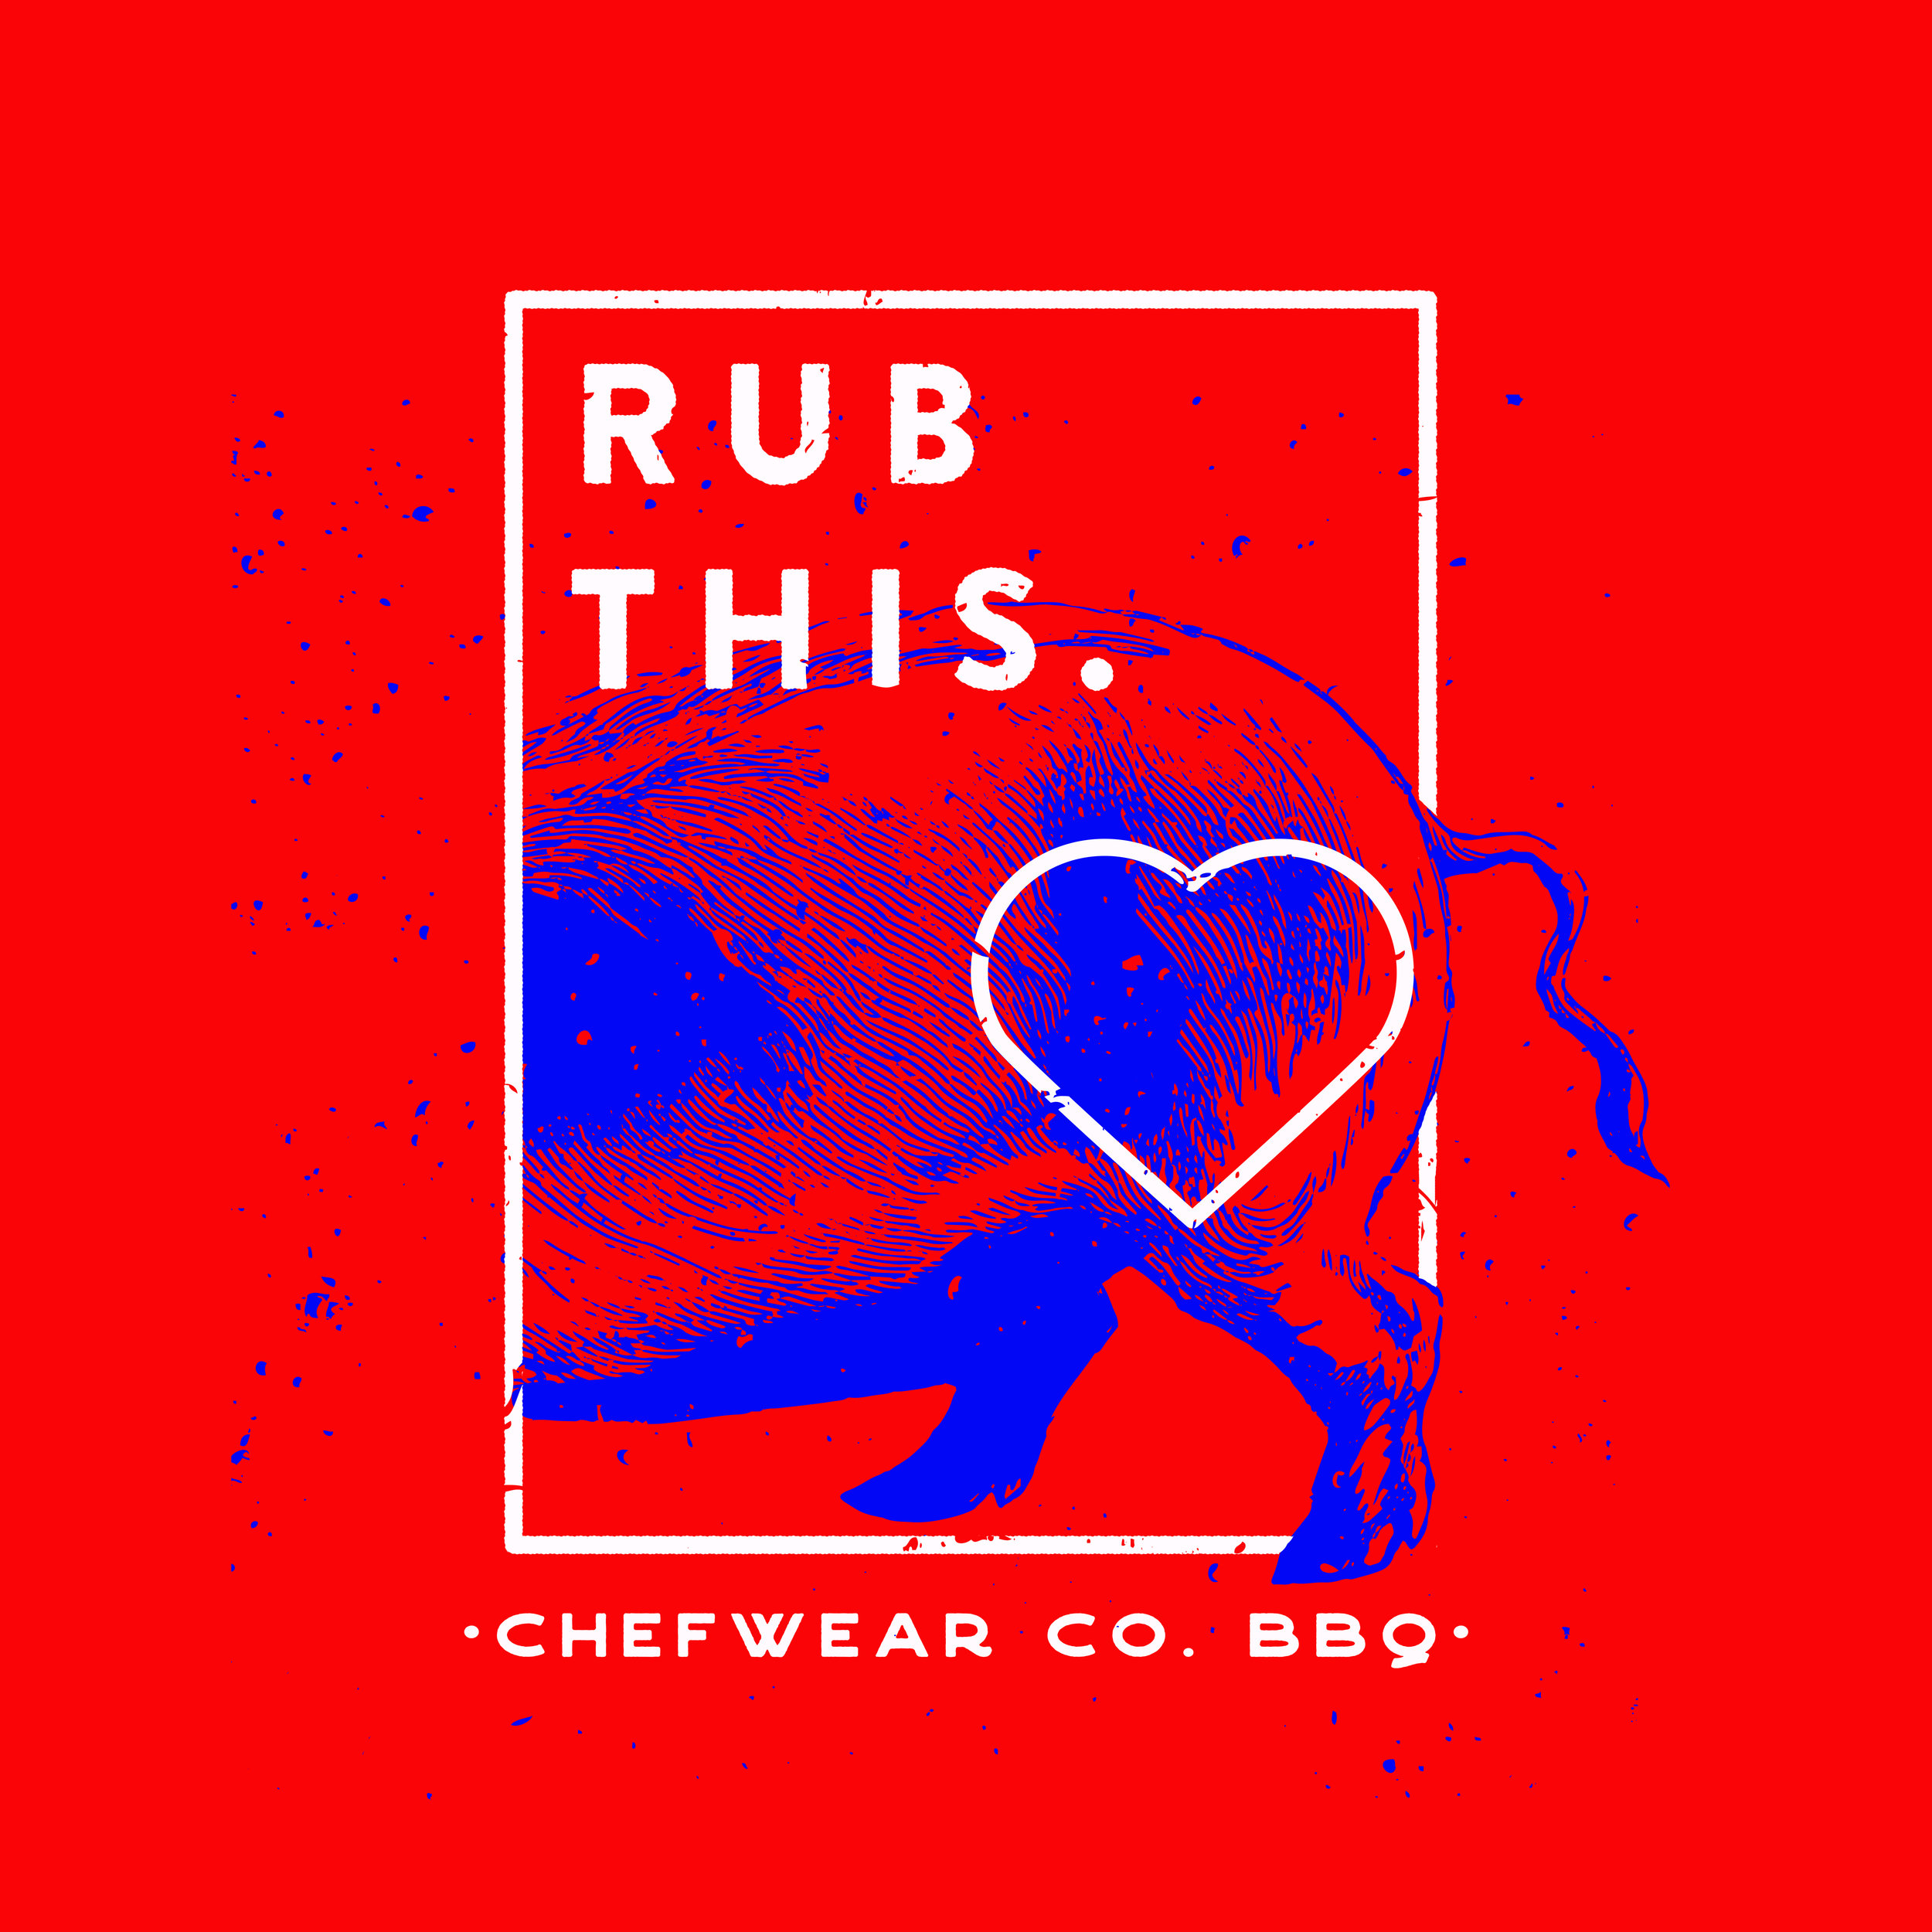 RUB THIS. - For this tee design I kept on with the theme of a fun play on words in regards to BBQ and dry rubbing pork butts.